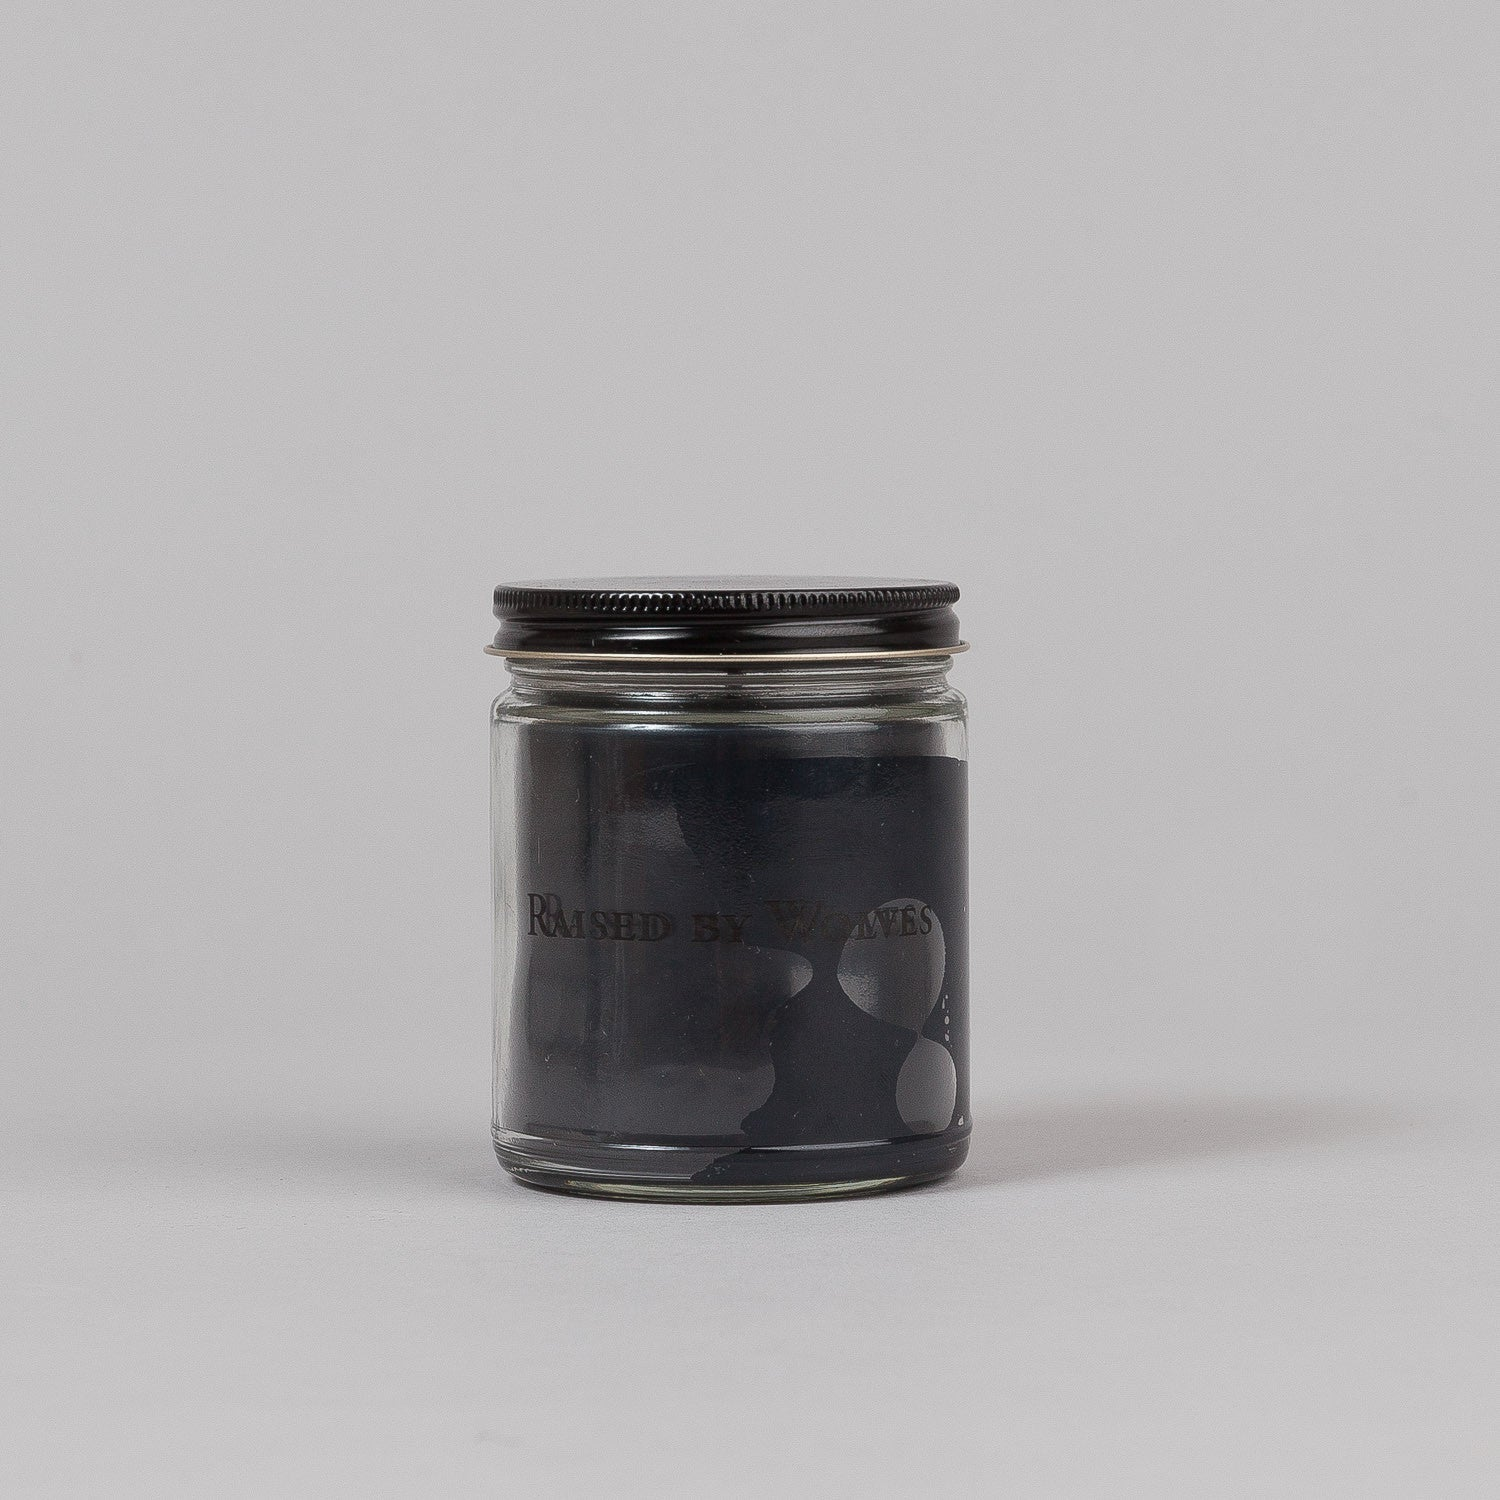 Raised By Wolves Joya 050 Candle